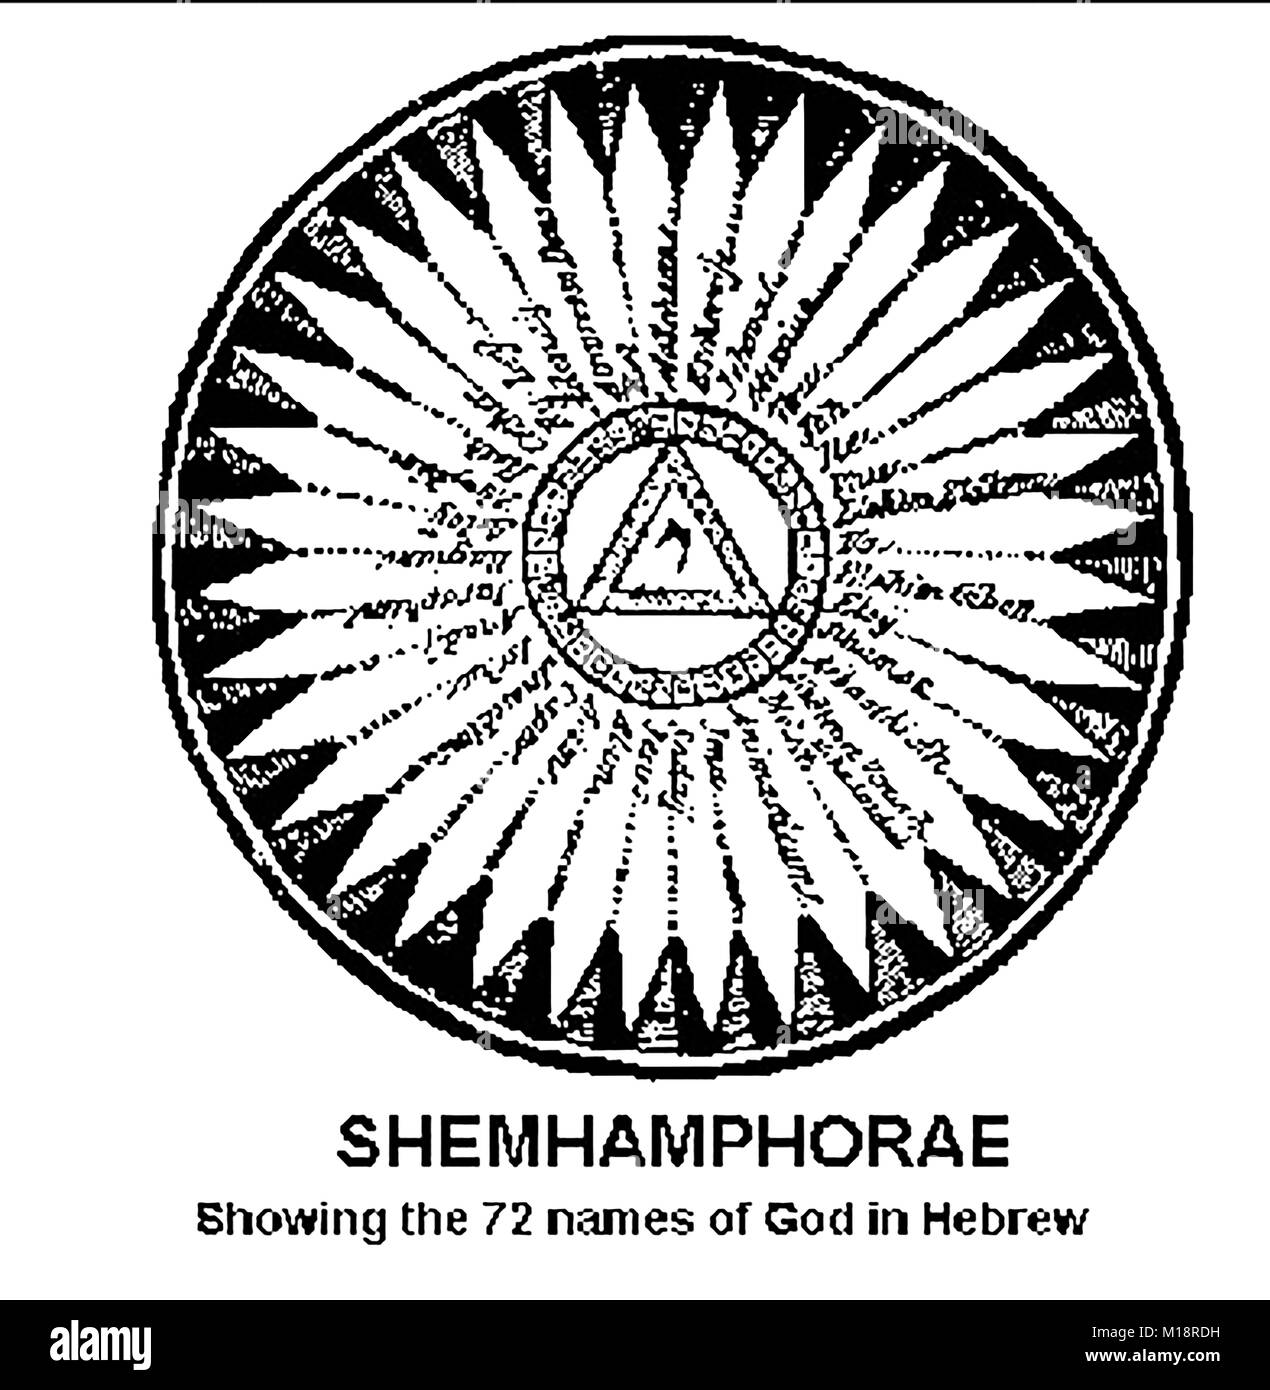 Magic,Mysticism, Religion & Alchemy -  SHEMHAMPHORAE showing the 72 names of God in Hebrew - Kabbalah - Stock Image